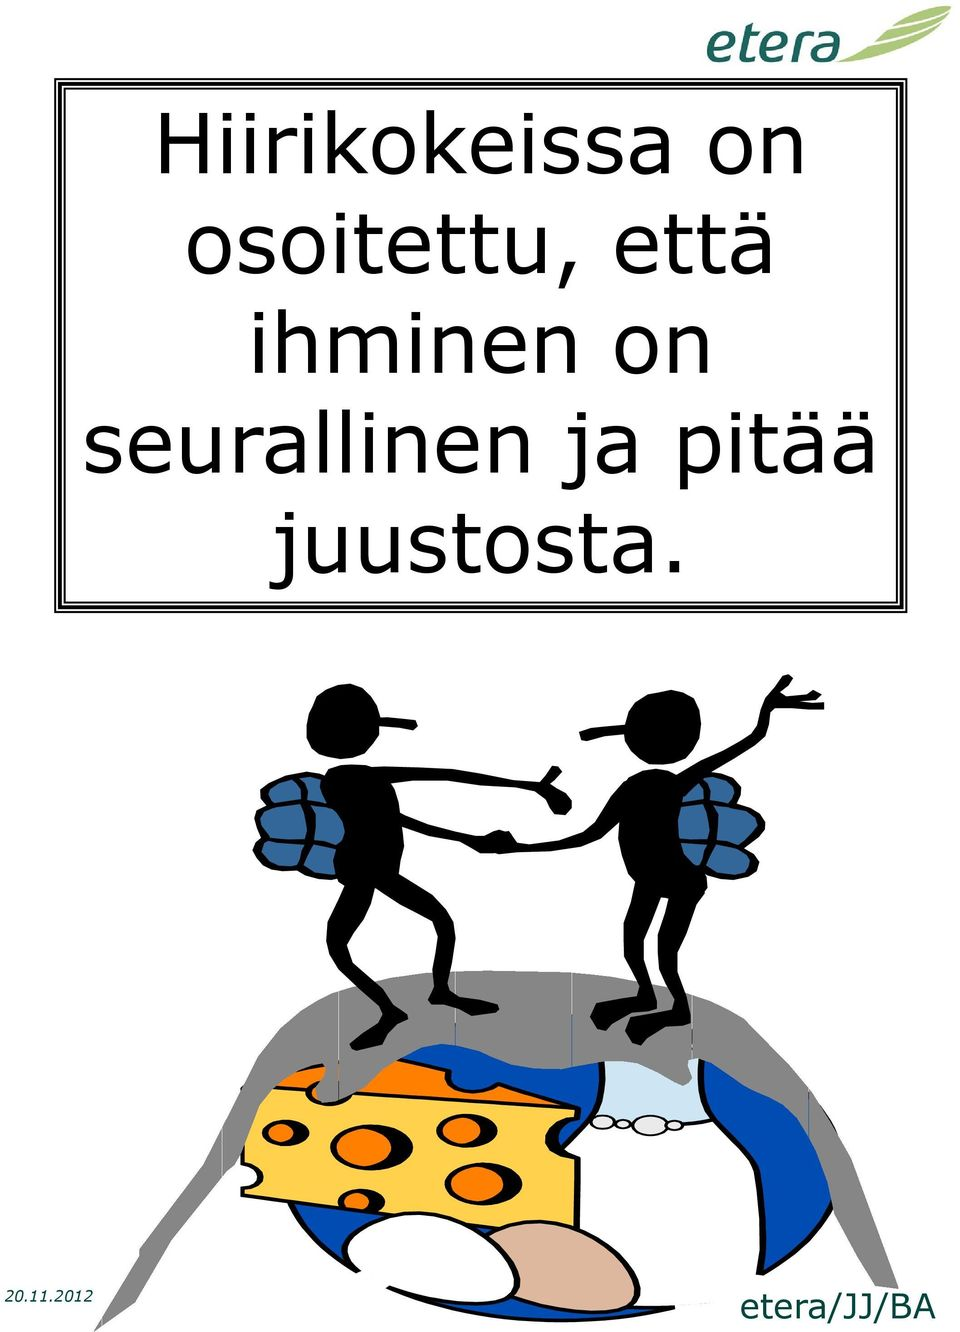 ihminen on